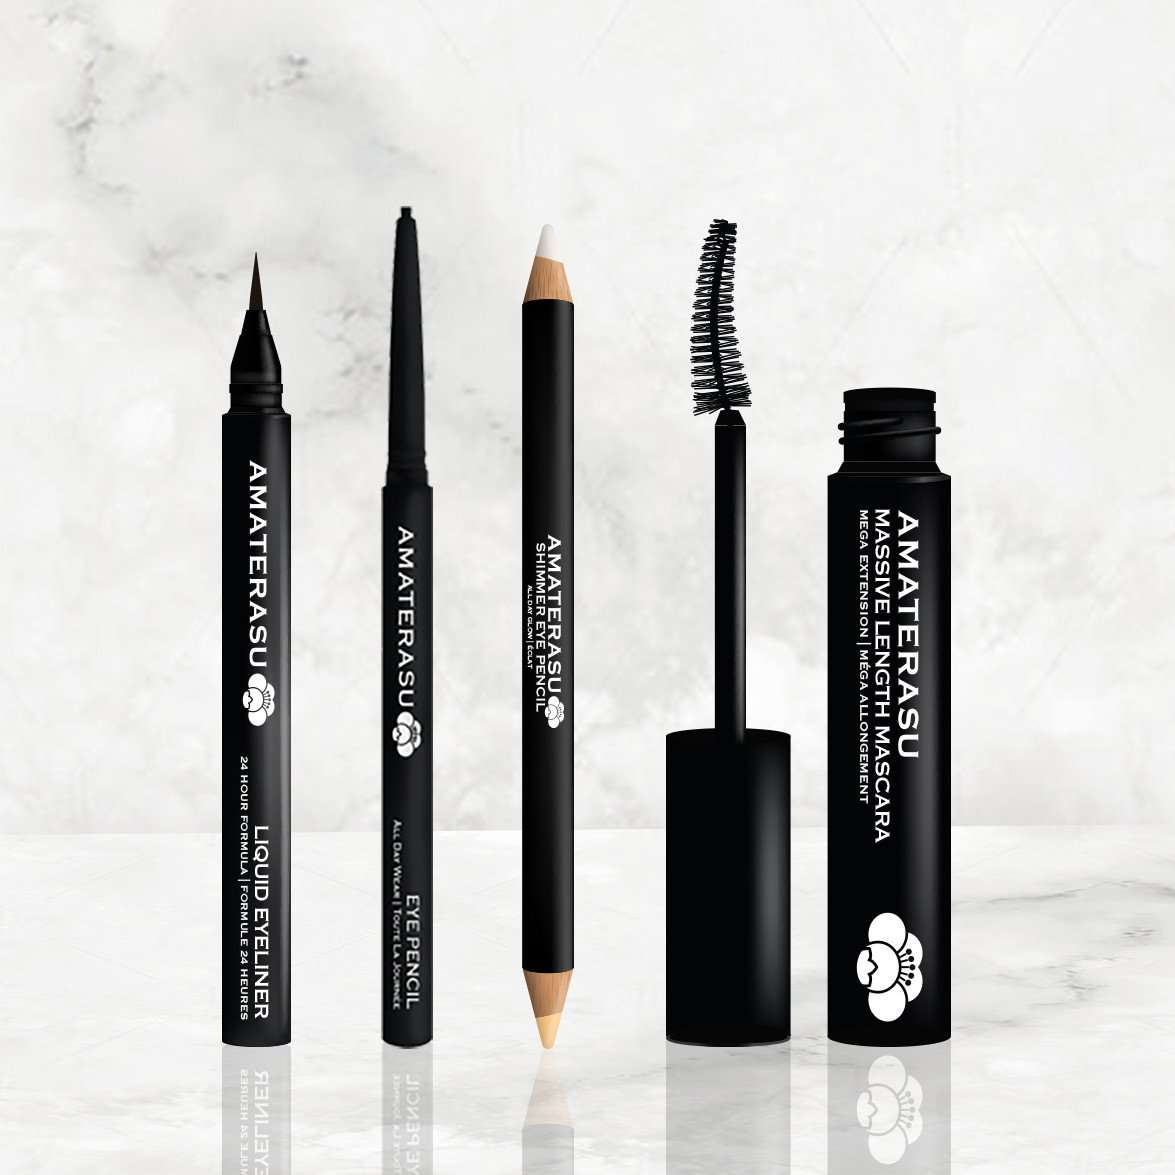 the perfect makeup set - THE MUST HAVES SET = LIQUID EYELINER + EYE PENCIL + SHIMMER EYE PENCIL MASSIVE LENGTH MASCARA